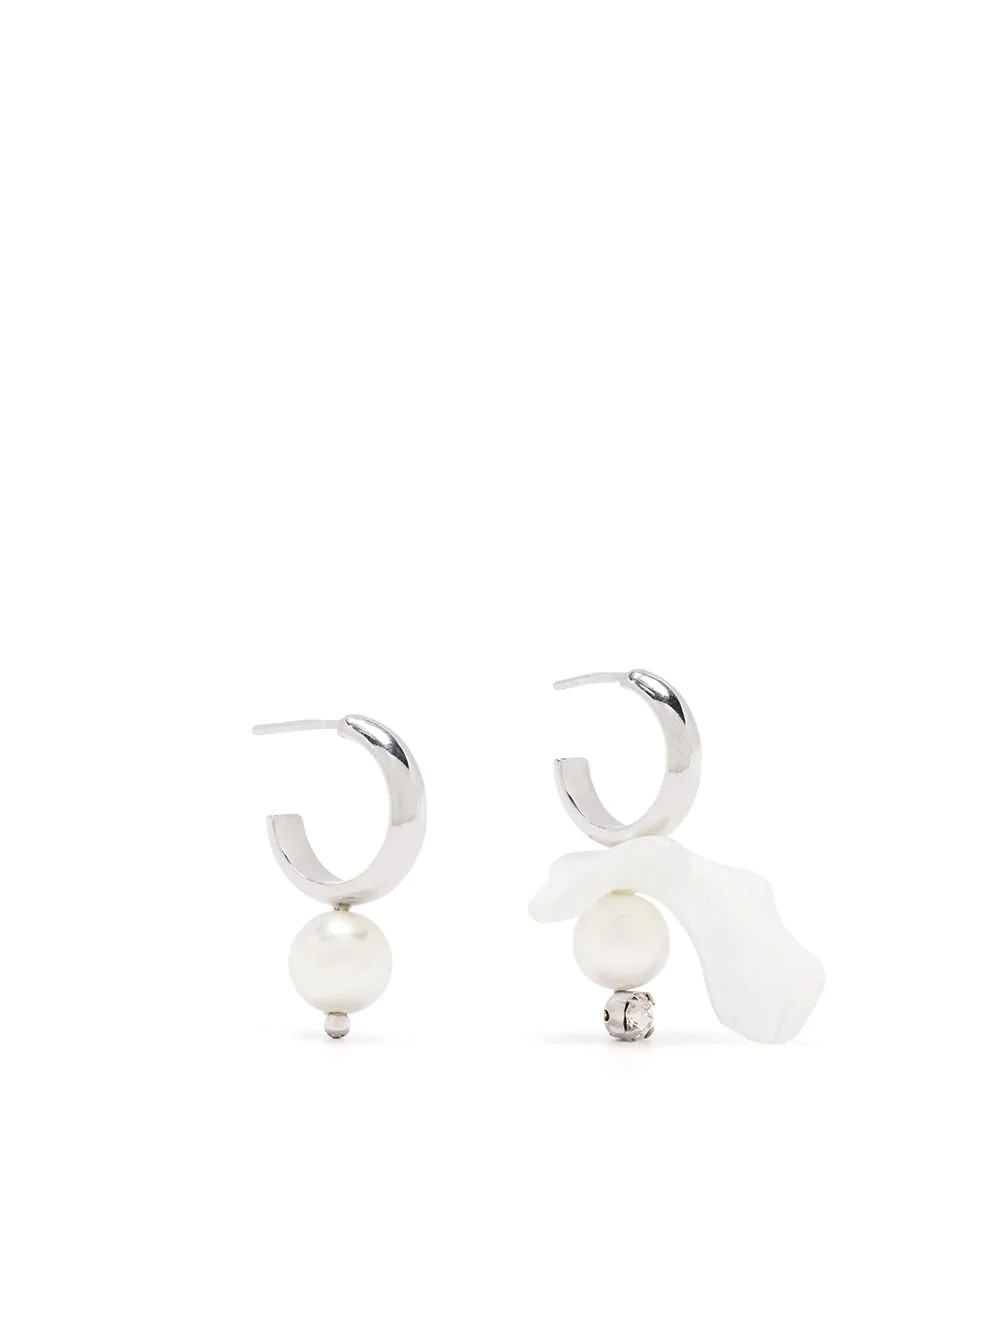 MIX-MATCH MOTHER OF PEARL HOOP EARRING